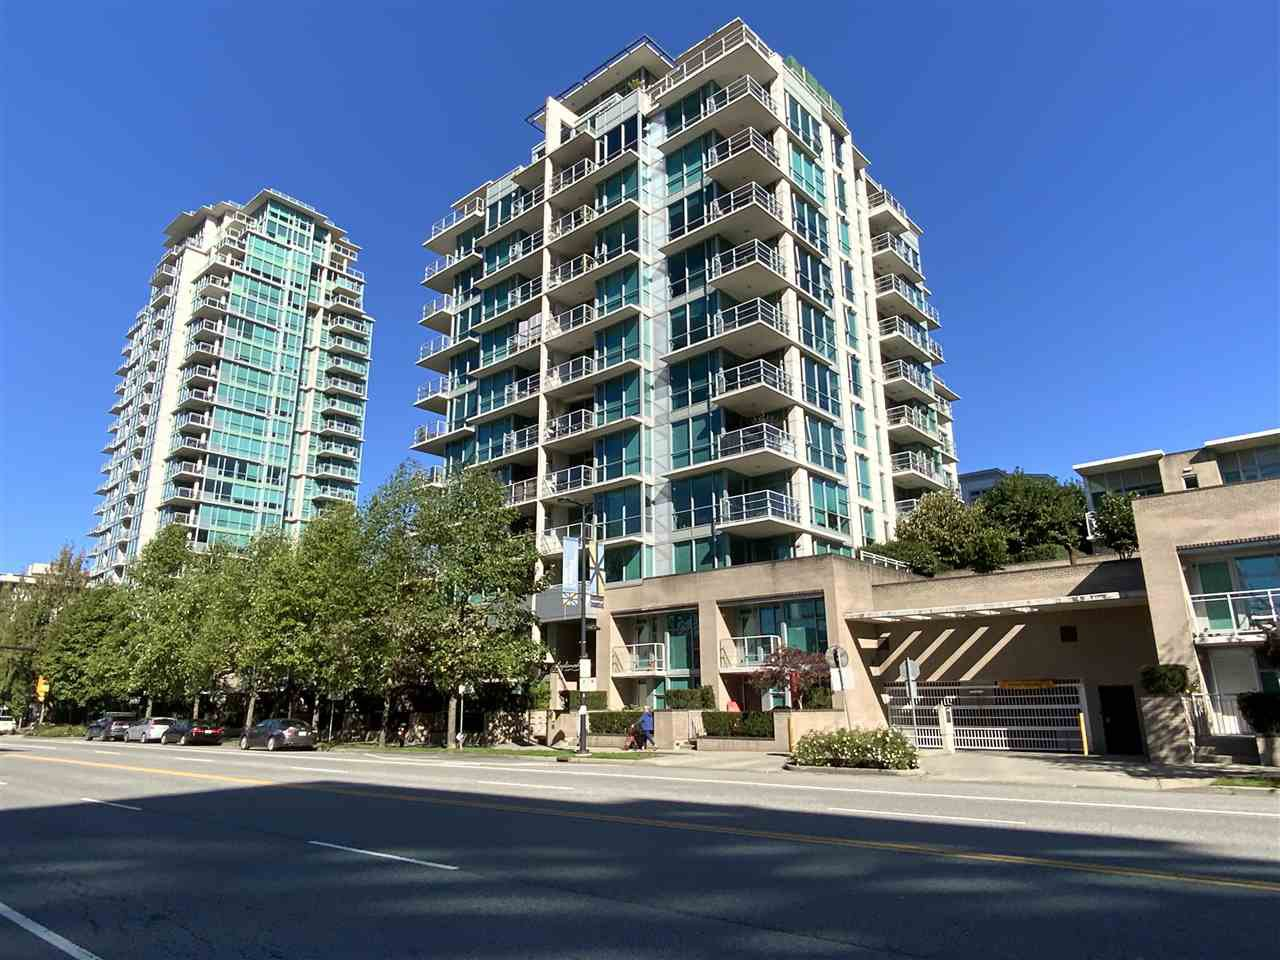 """Main Photo: TH15 168 E ESPLANADE in North Vancouver: Lower Lonsdale Townhouse for sale in """"The Pier"""" : MLS®# R2504583"""